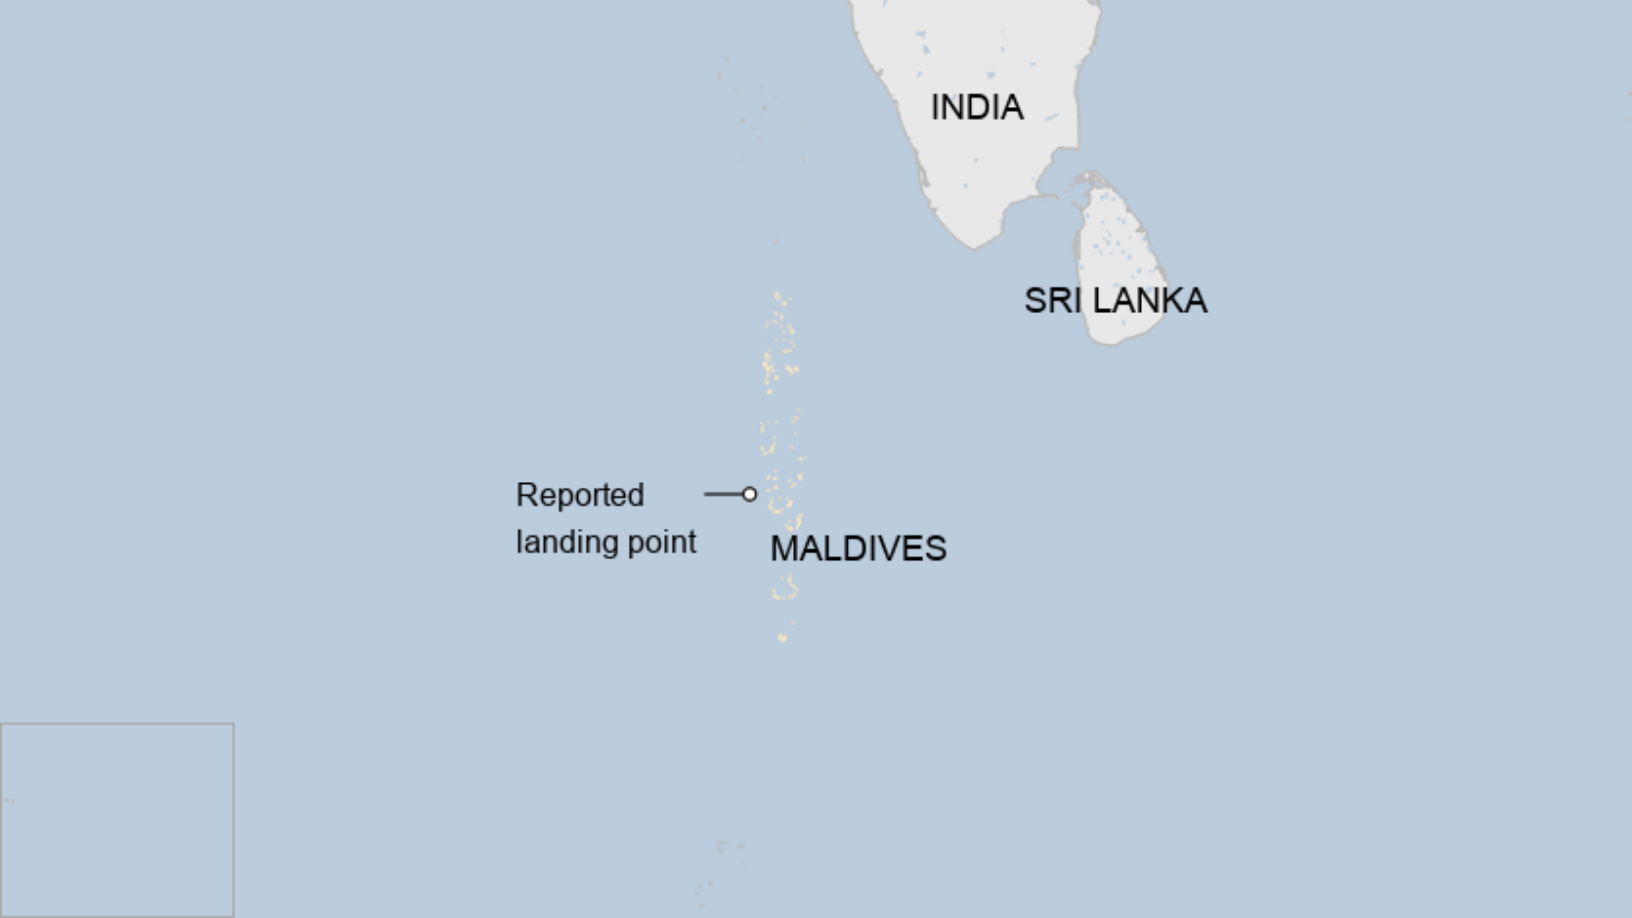 Map: Image shows the approximate landing point of the rocket